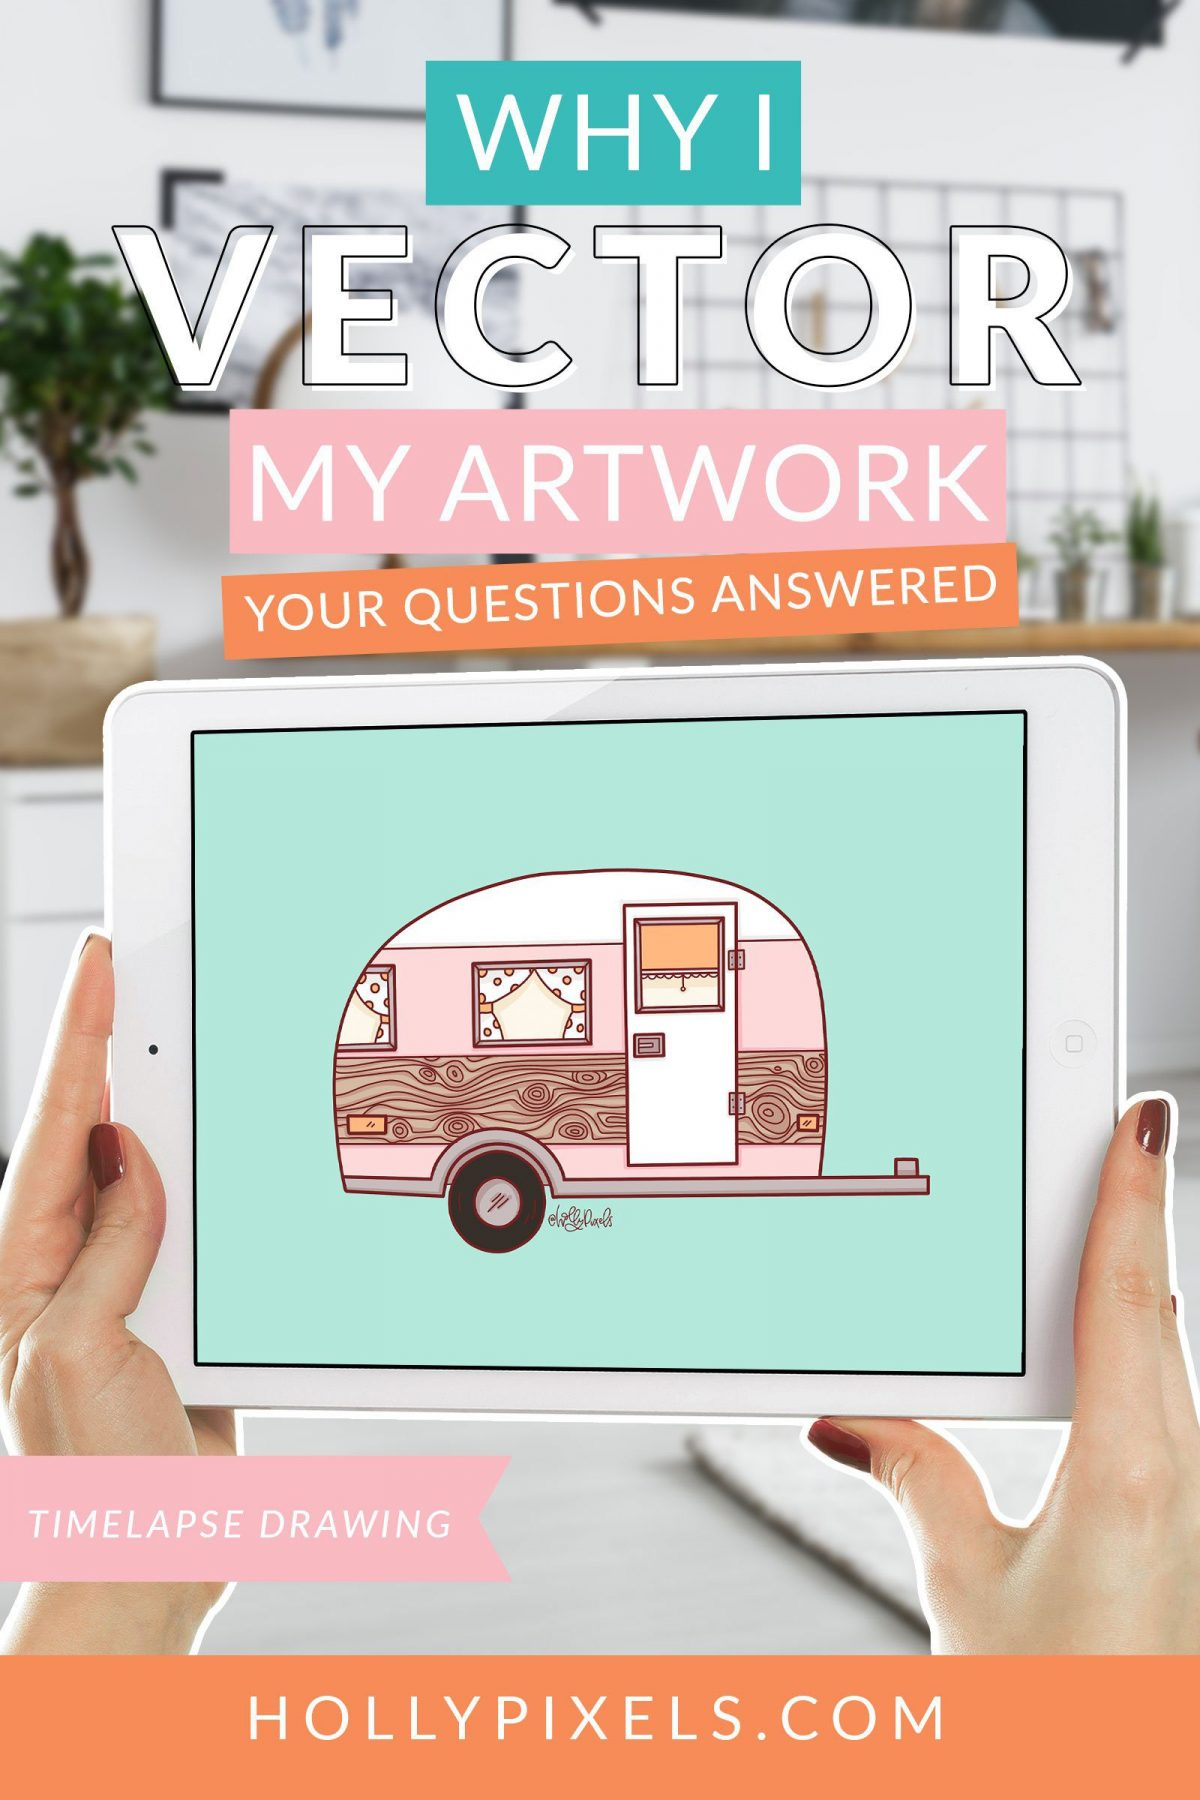 Why I Vector My Work | Why Procreate Isn't My Final Choice for Finished Art 1